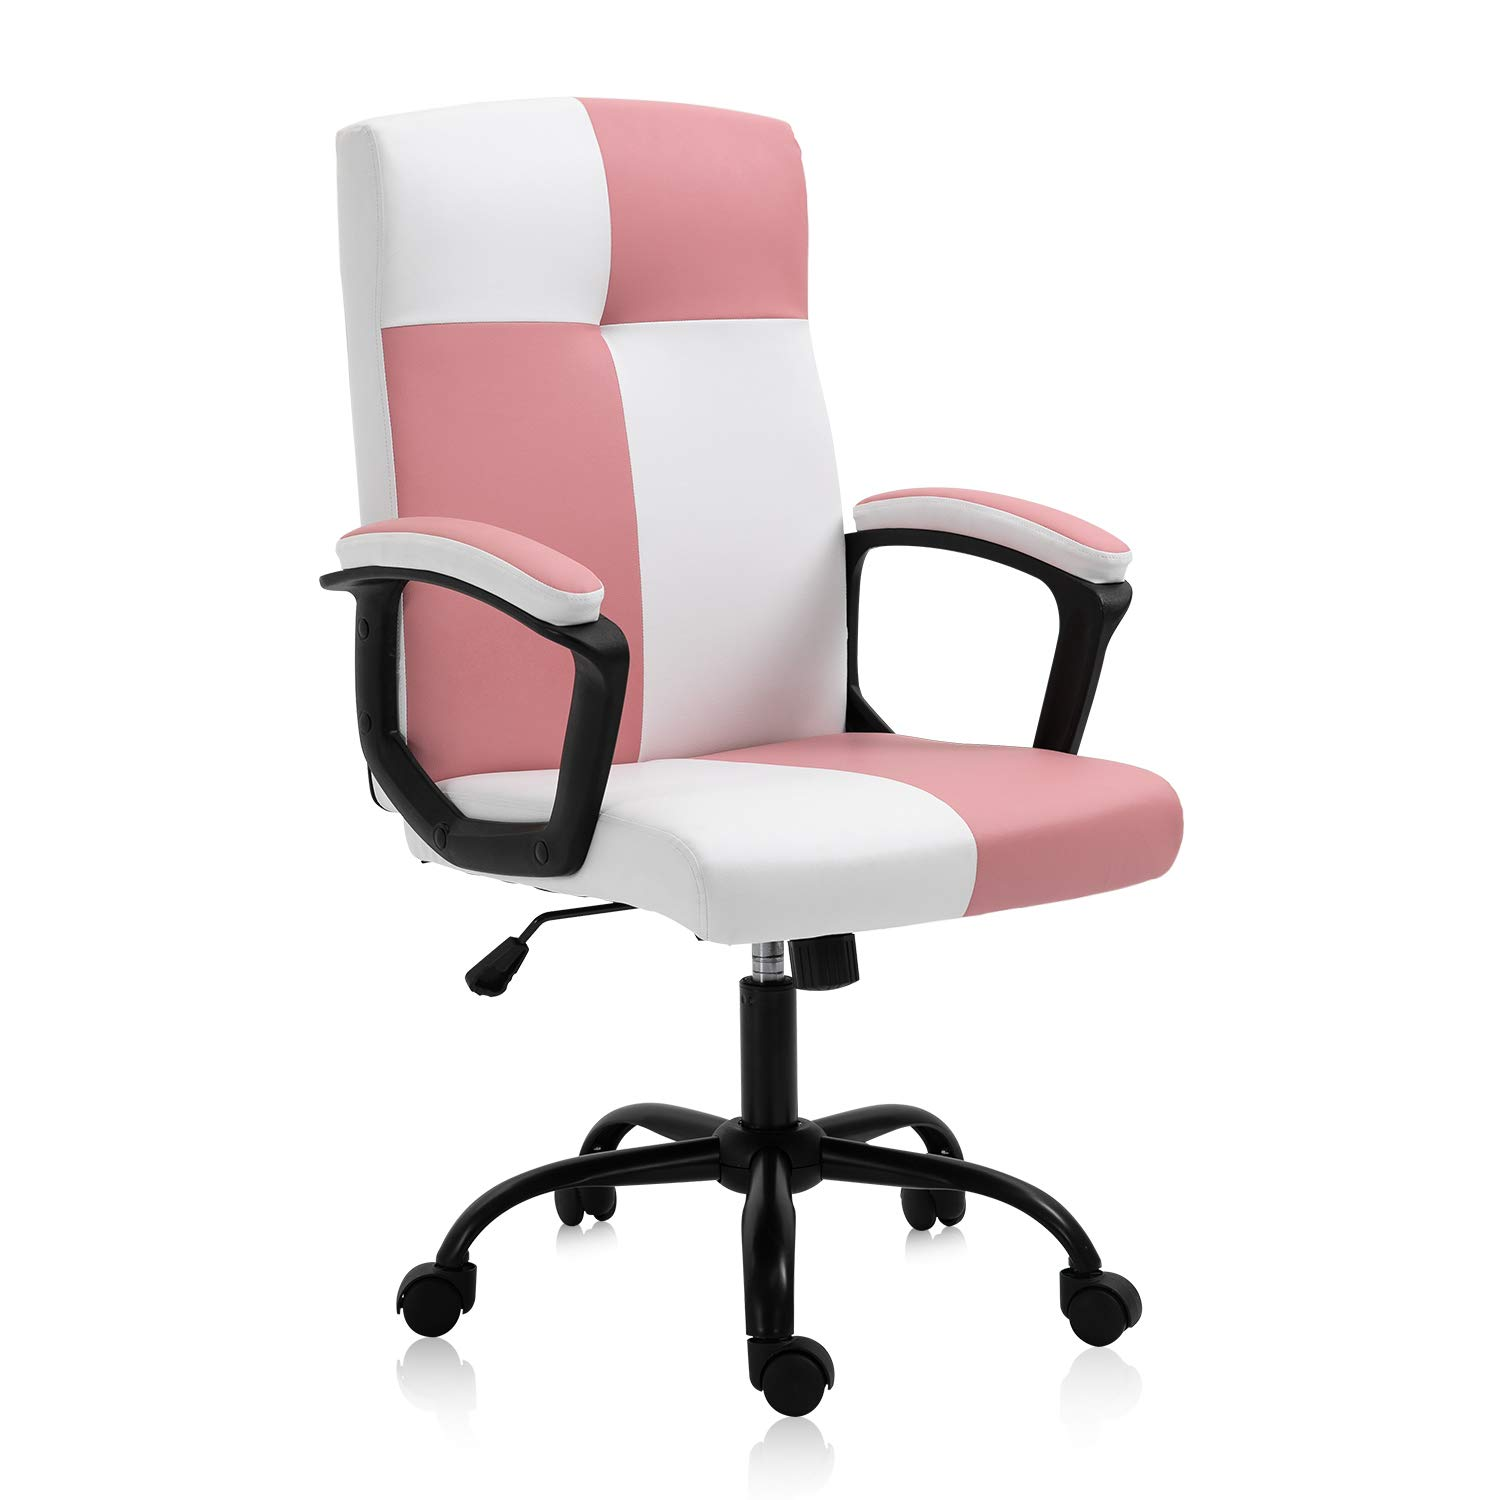 SEATZONE High Back Home Office Desk Chair PU Leather Ergonomic Executive Chair Rolling Swivel Adjustable Computer Chair with Wheels,White&Pink